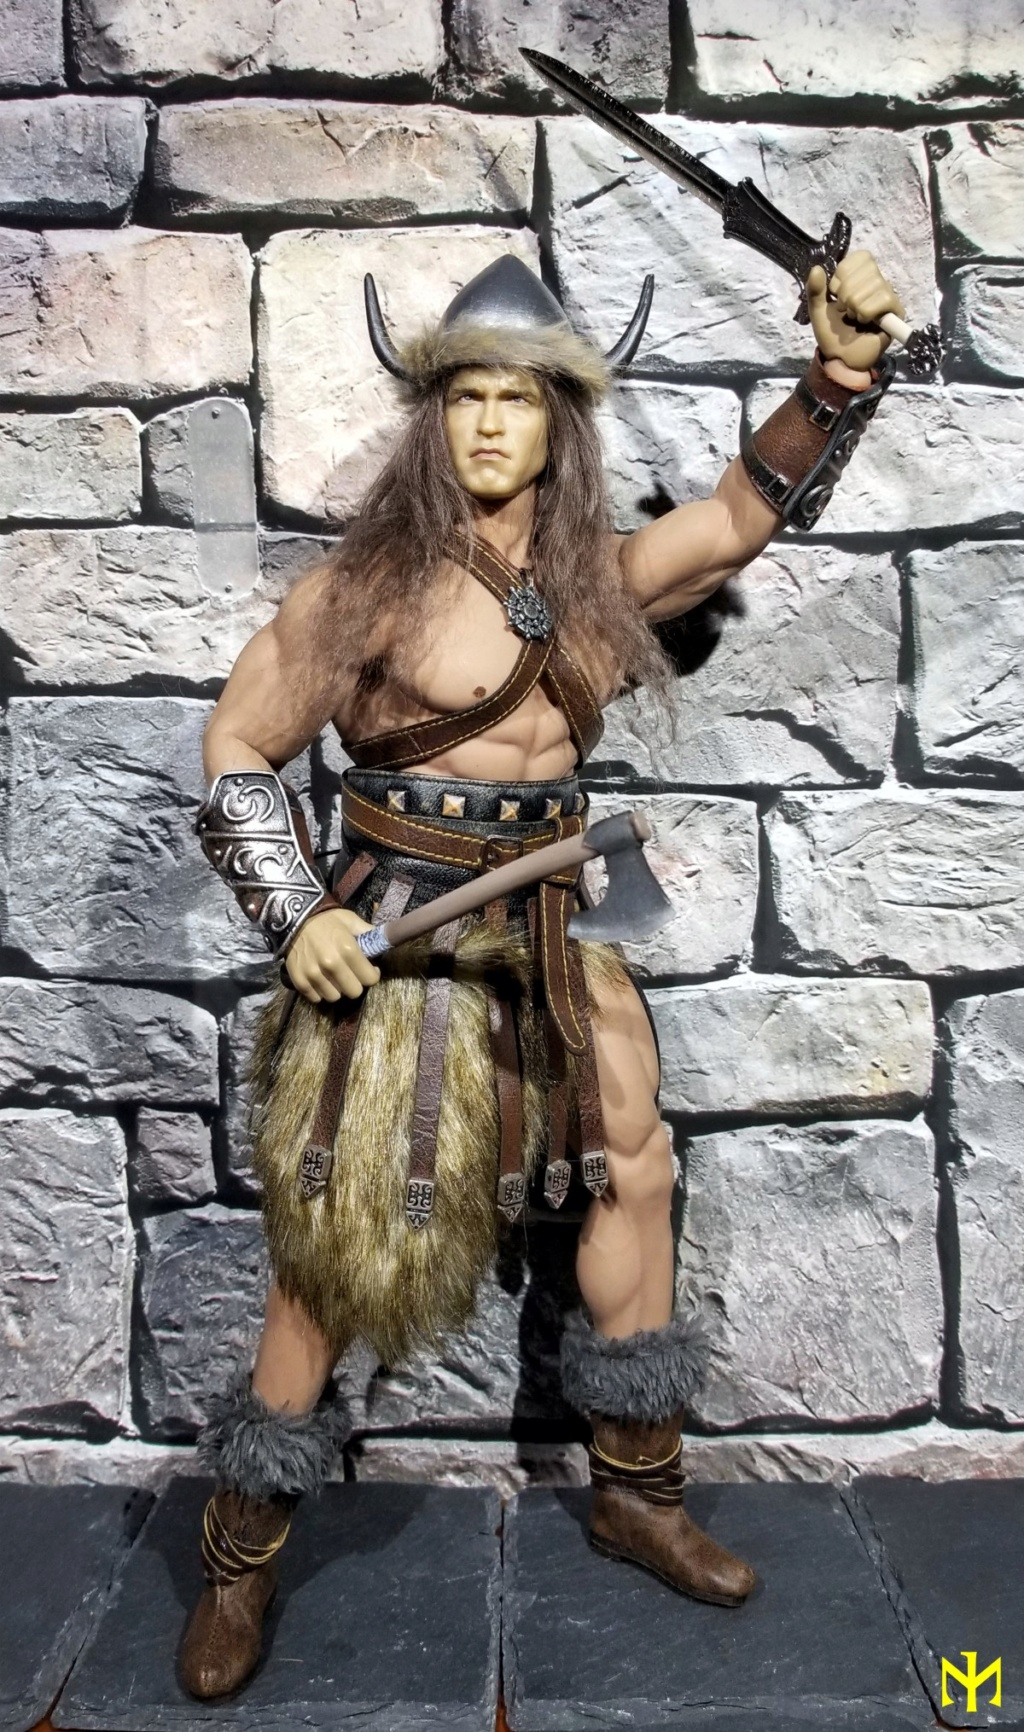 Conanesque: A Fantasy Warrior Kitbash (update 5: February 2020) Conane11